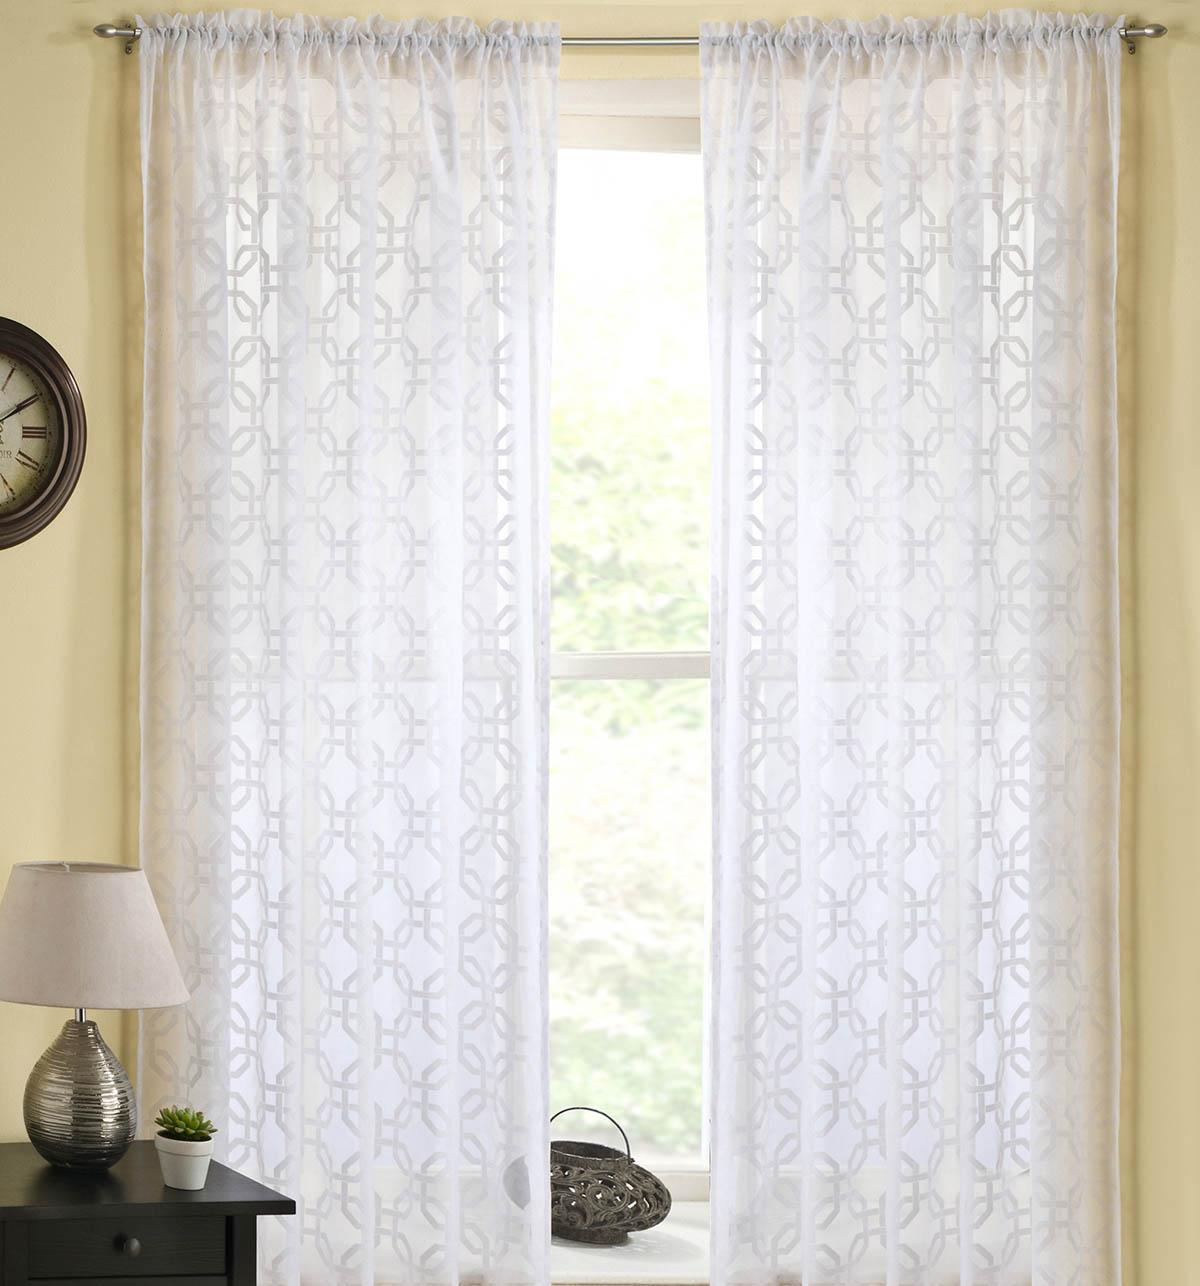 Find The Curtain Accessories You Need My Home Needs That